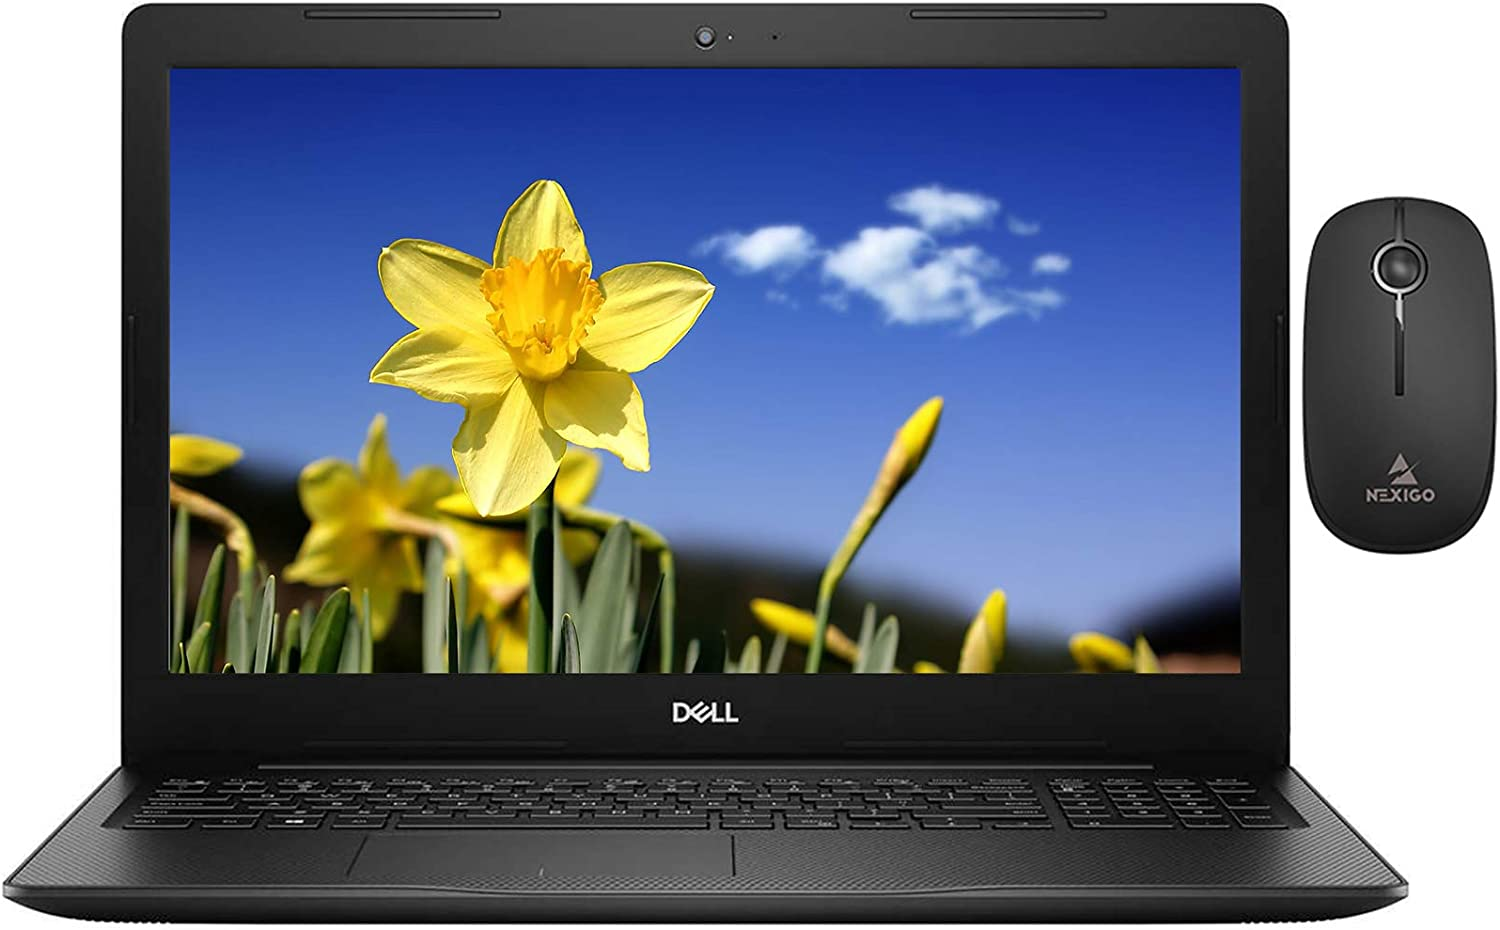 2020 Dell Inspiron 15 3000 FHD 1080P Touchscreen Laptop with Webcam, Intel 4-Core i7-1065G7 up to 3.9 GHz, 32GB RAM, 1TB SSD (Boot) +1TB HDD, Windows 10 + NexiGo Wireless Mouse Bundle